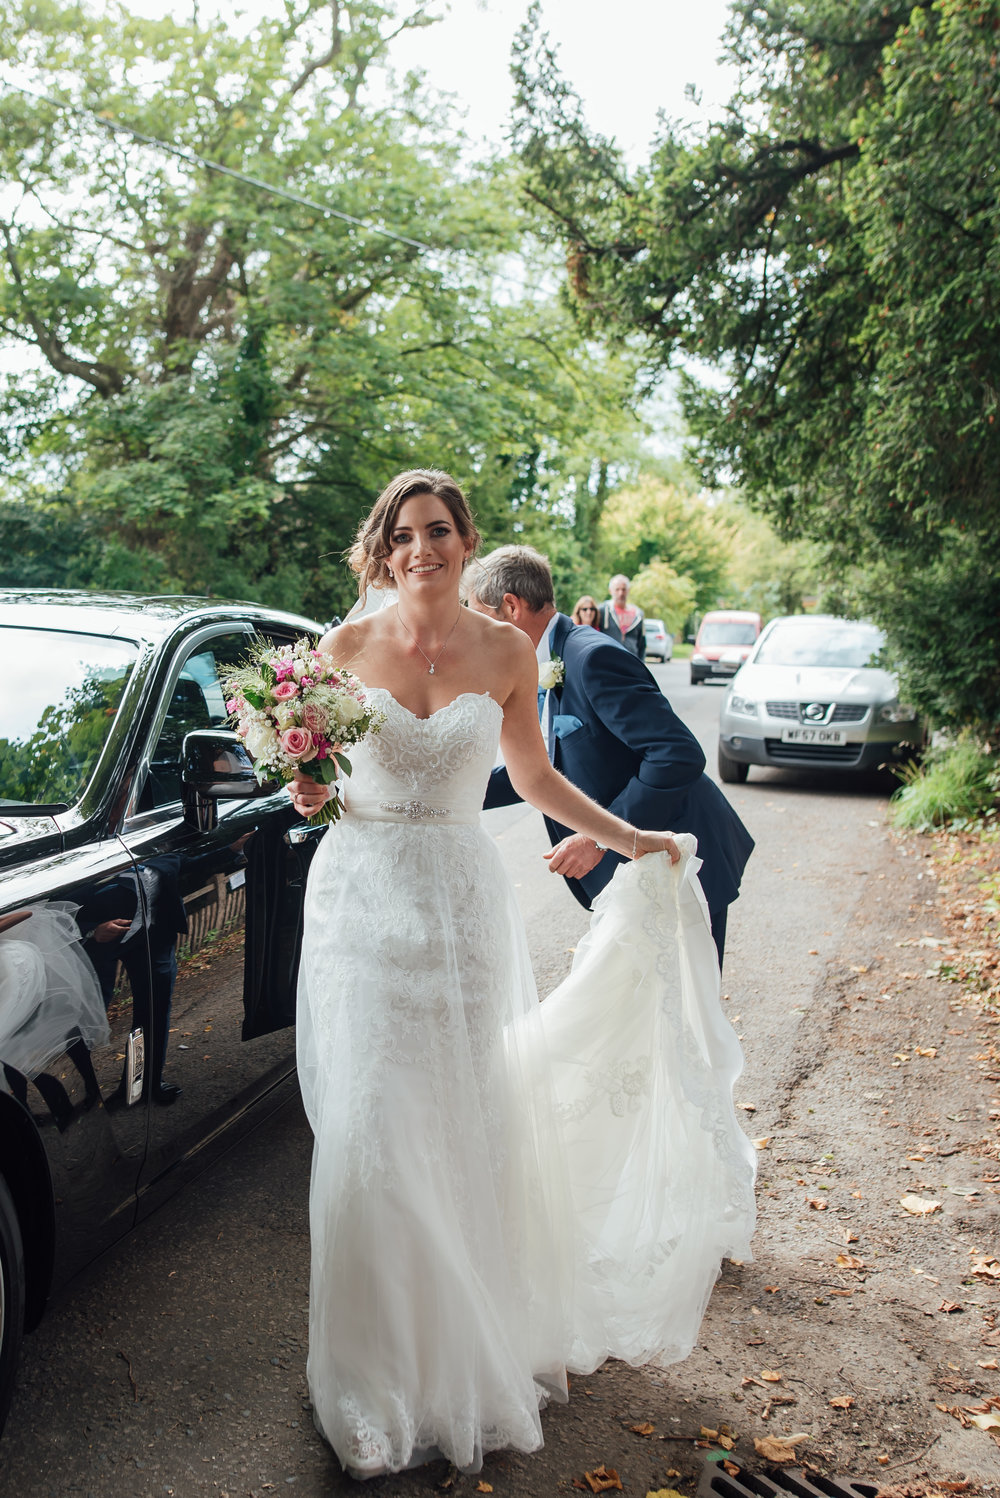 Hampshire-wedding-photographer : hampshire-village-hall-wedding : rotherwick-village-hall-wedding : wedding-photographer-hampshire : amy-james-photography : natural-wedding-photographer-hampshire : wedding-photographer-hampshire-251.jpg